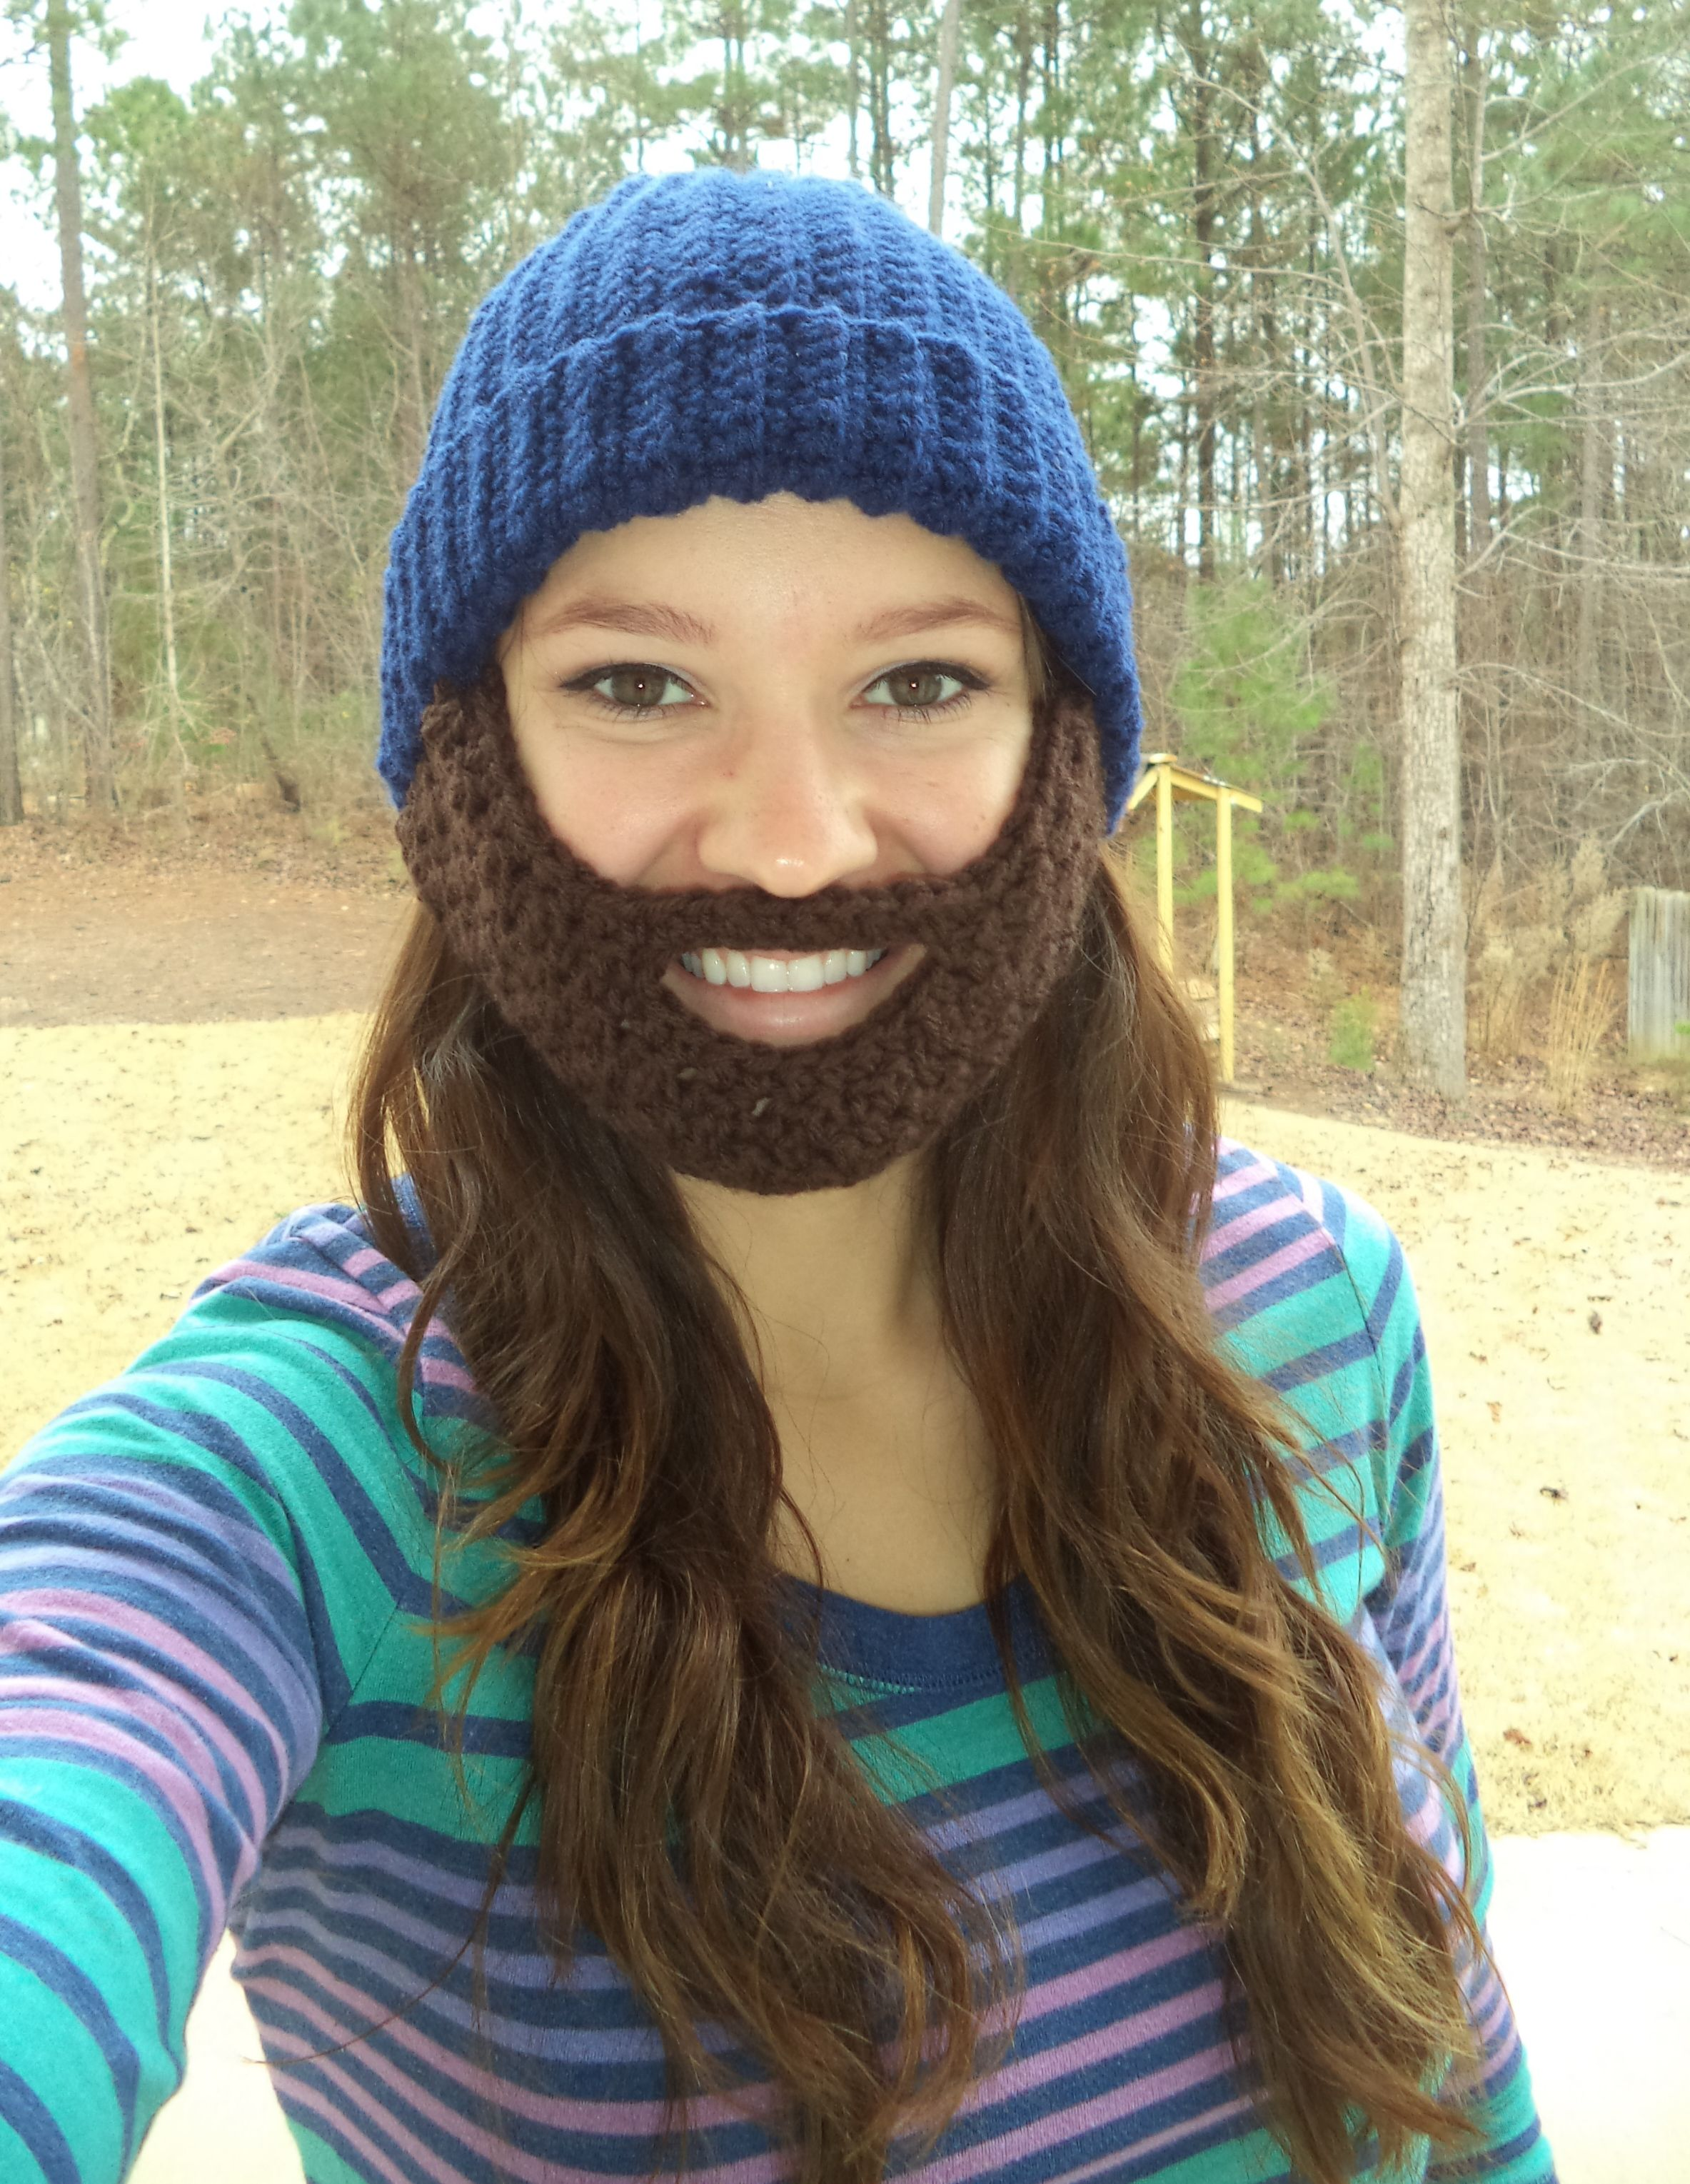 Awesome bearded hat!!